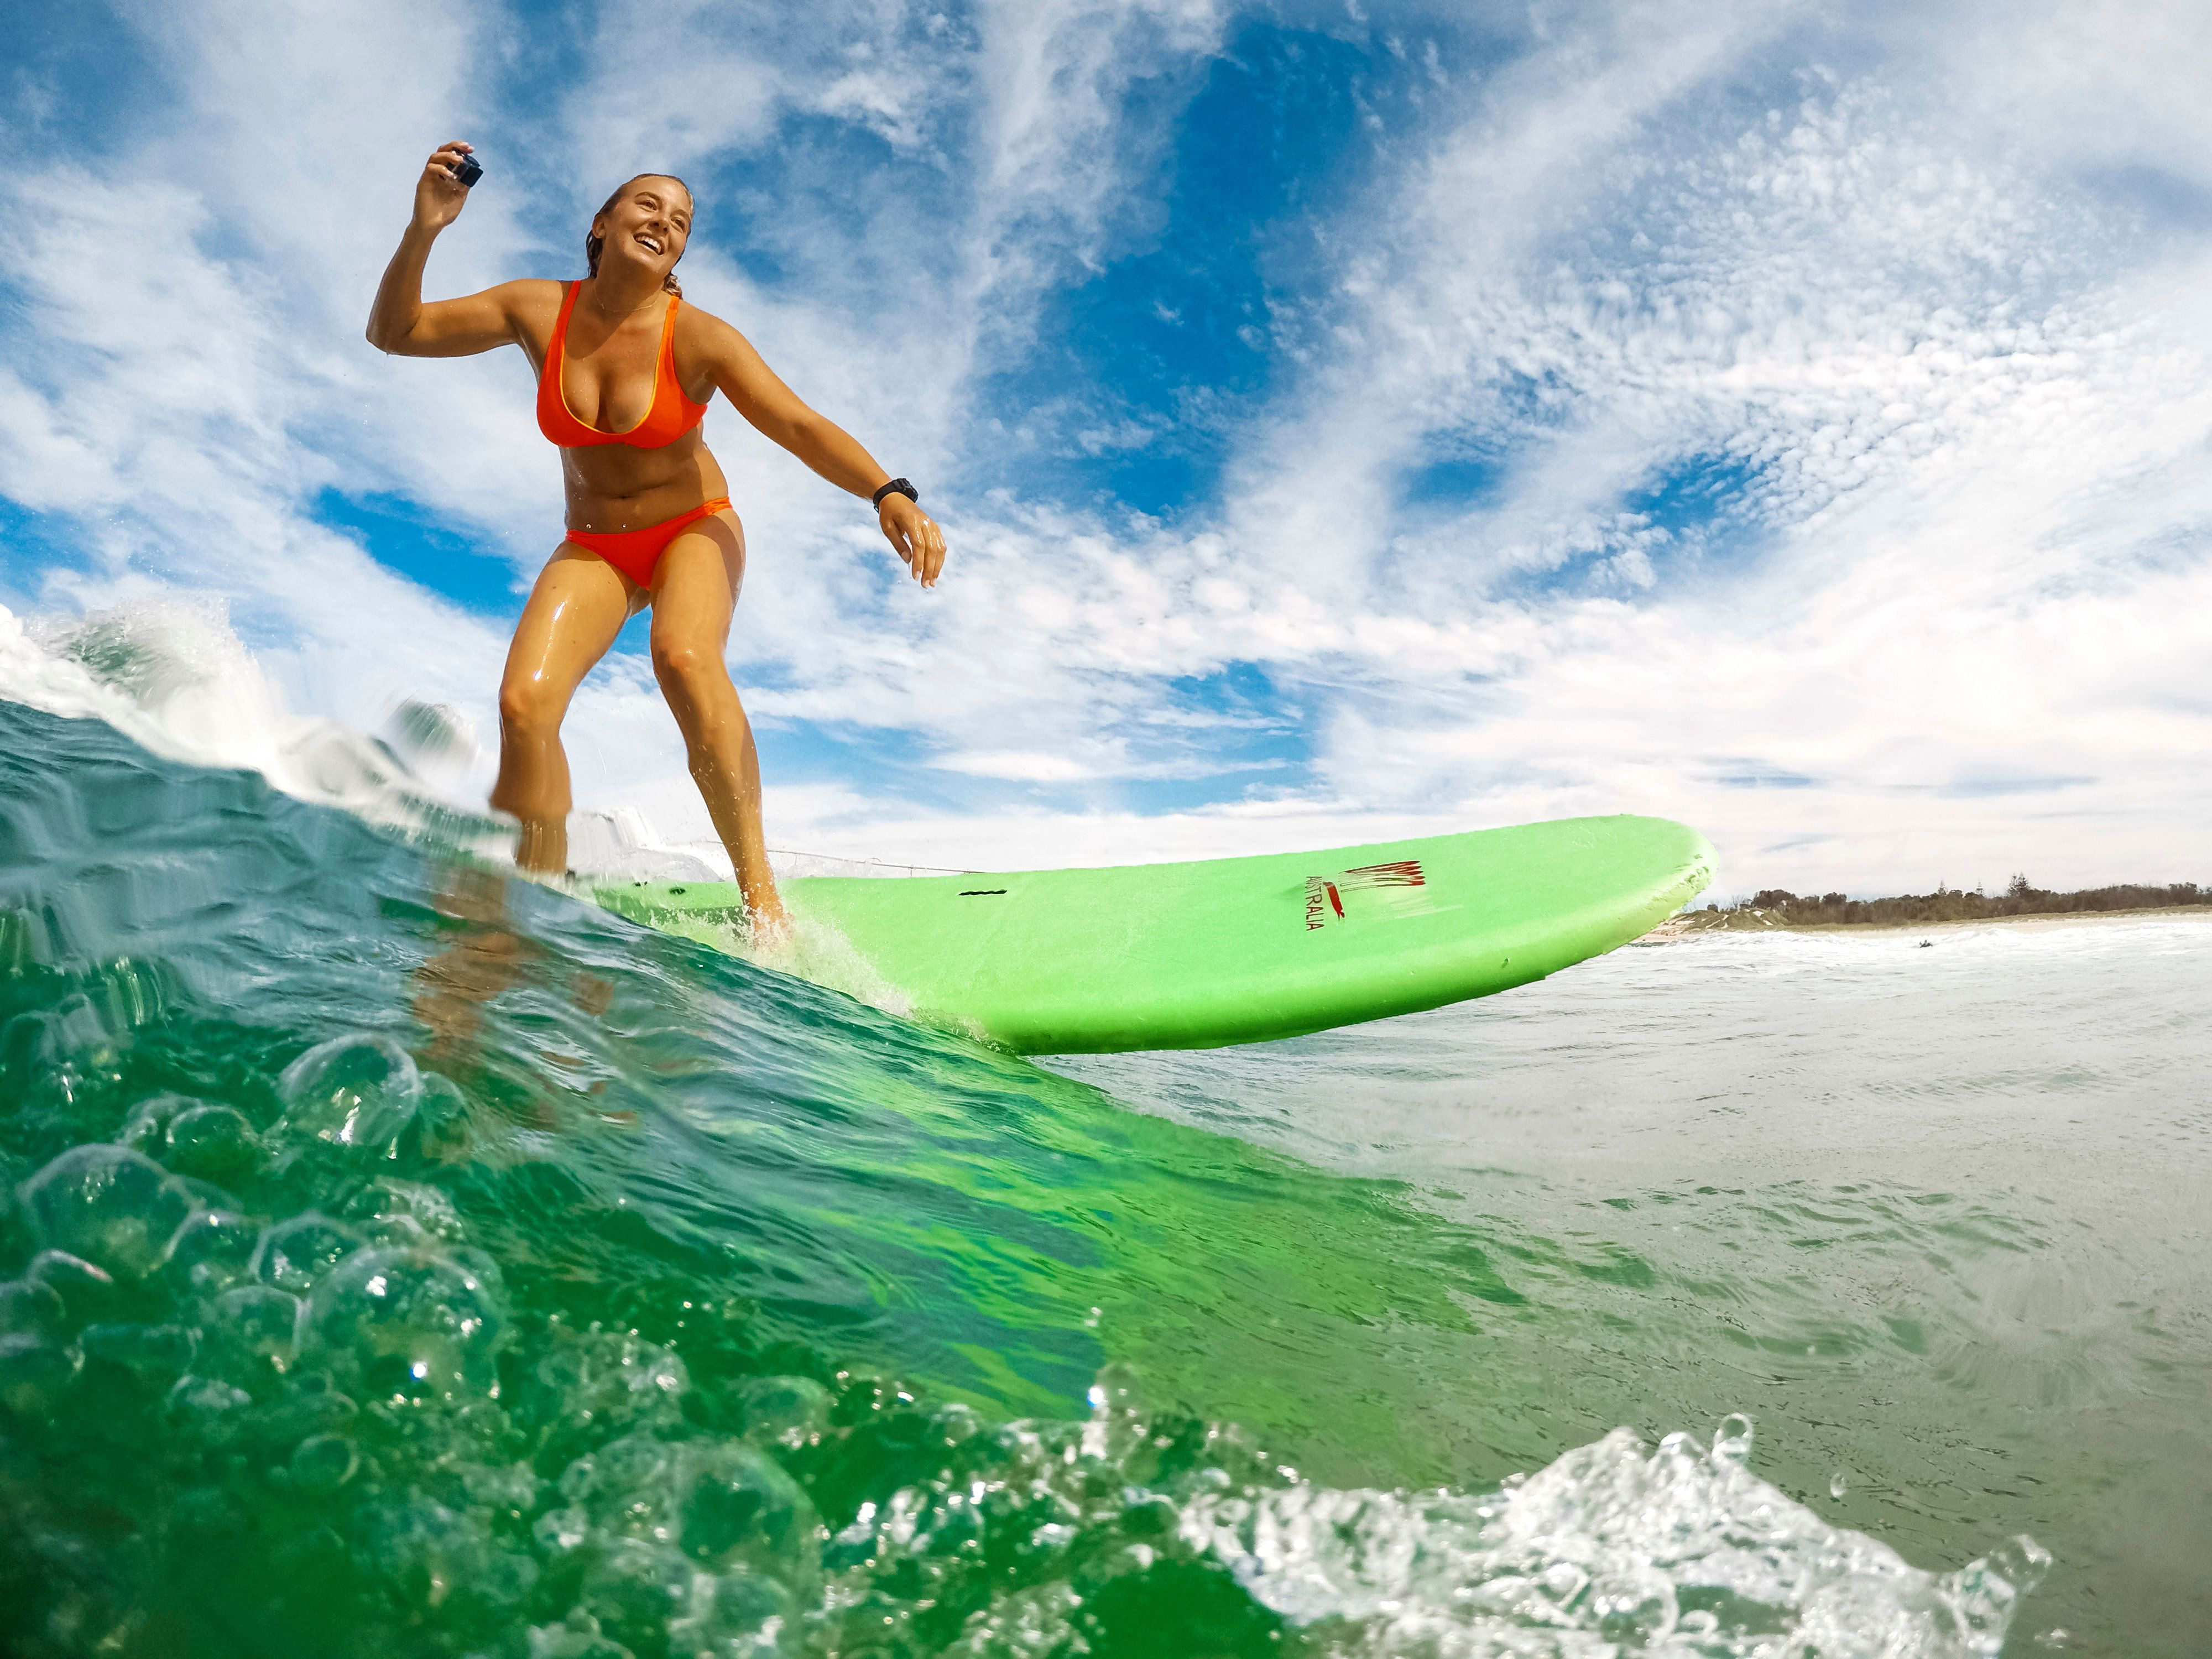 Inside GoPro's Family Of Athletes, A Horde Of The